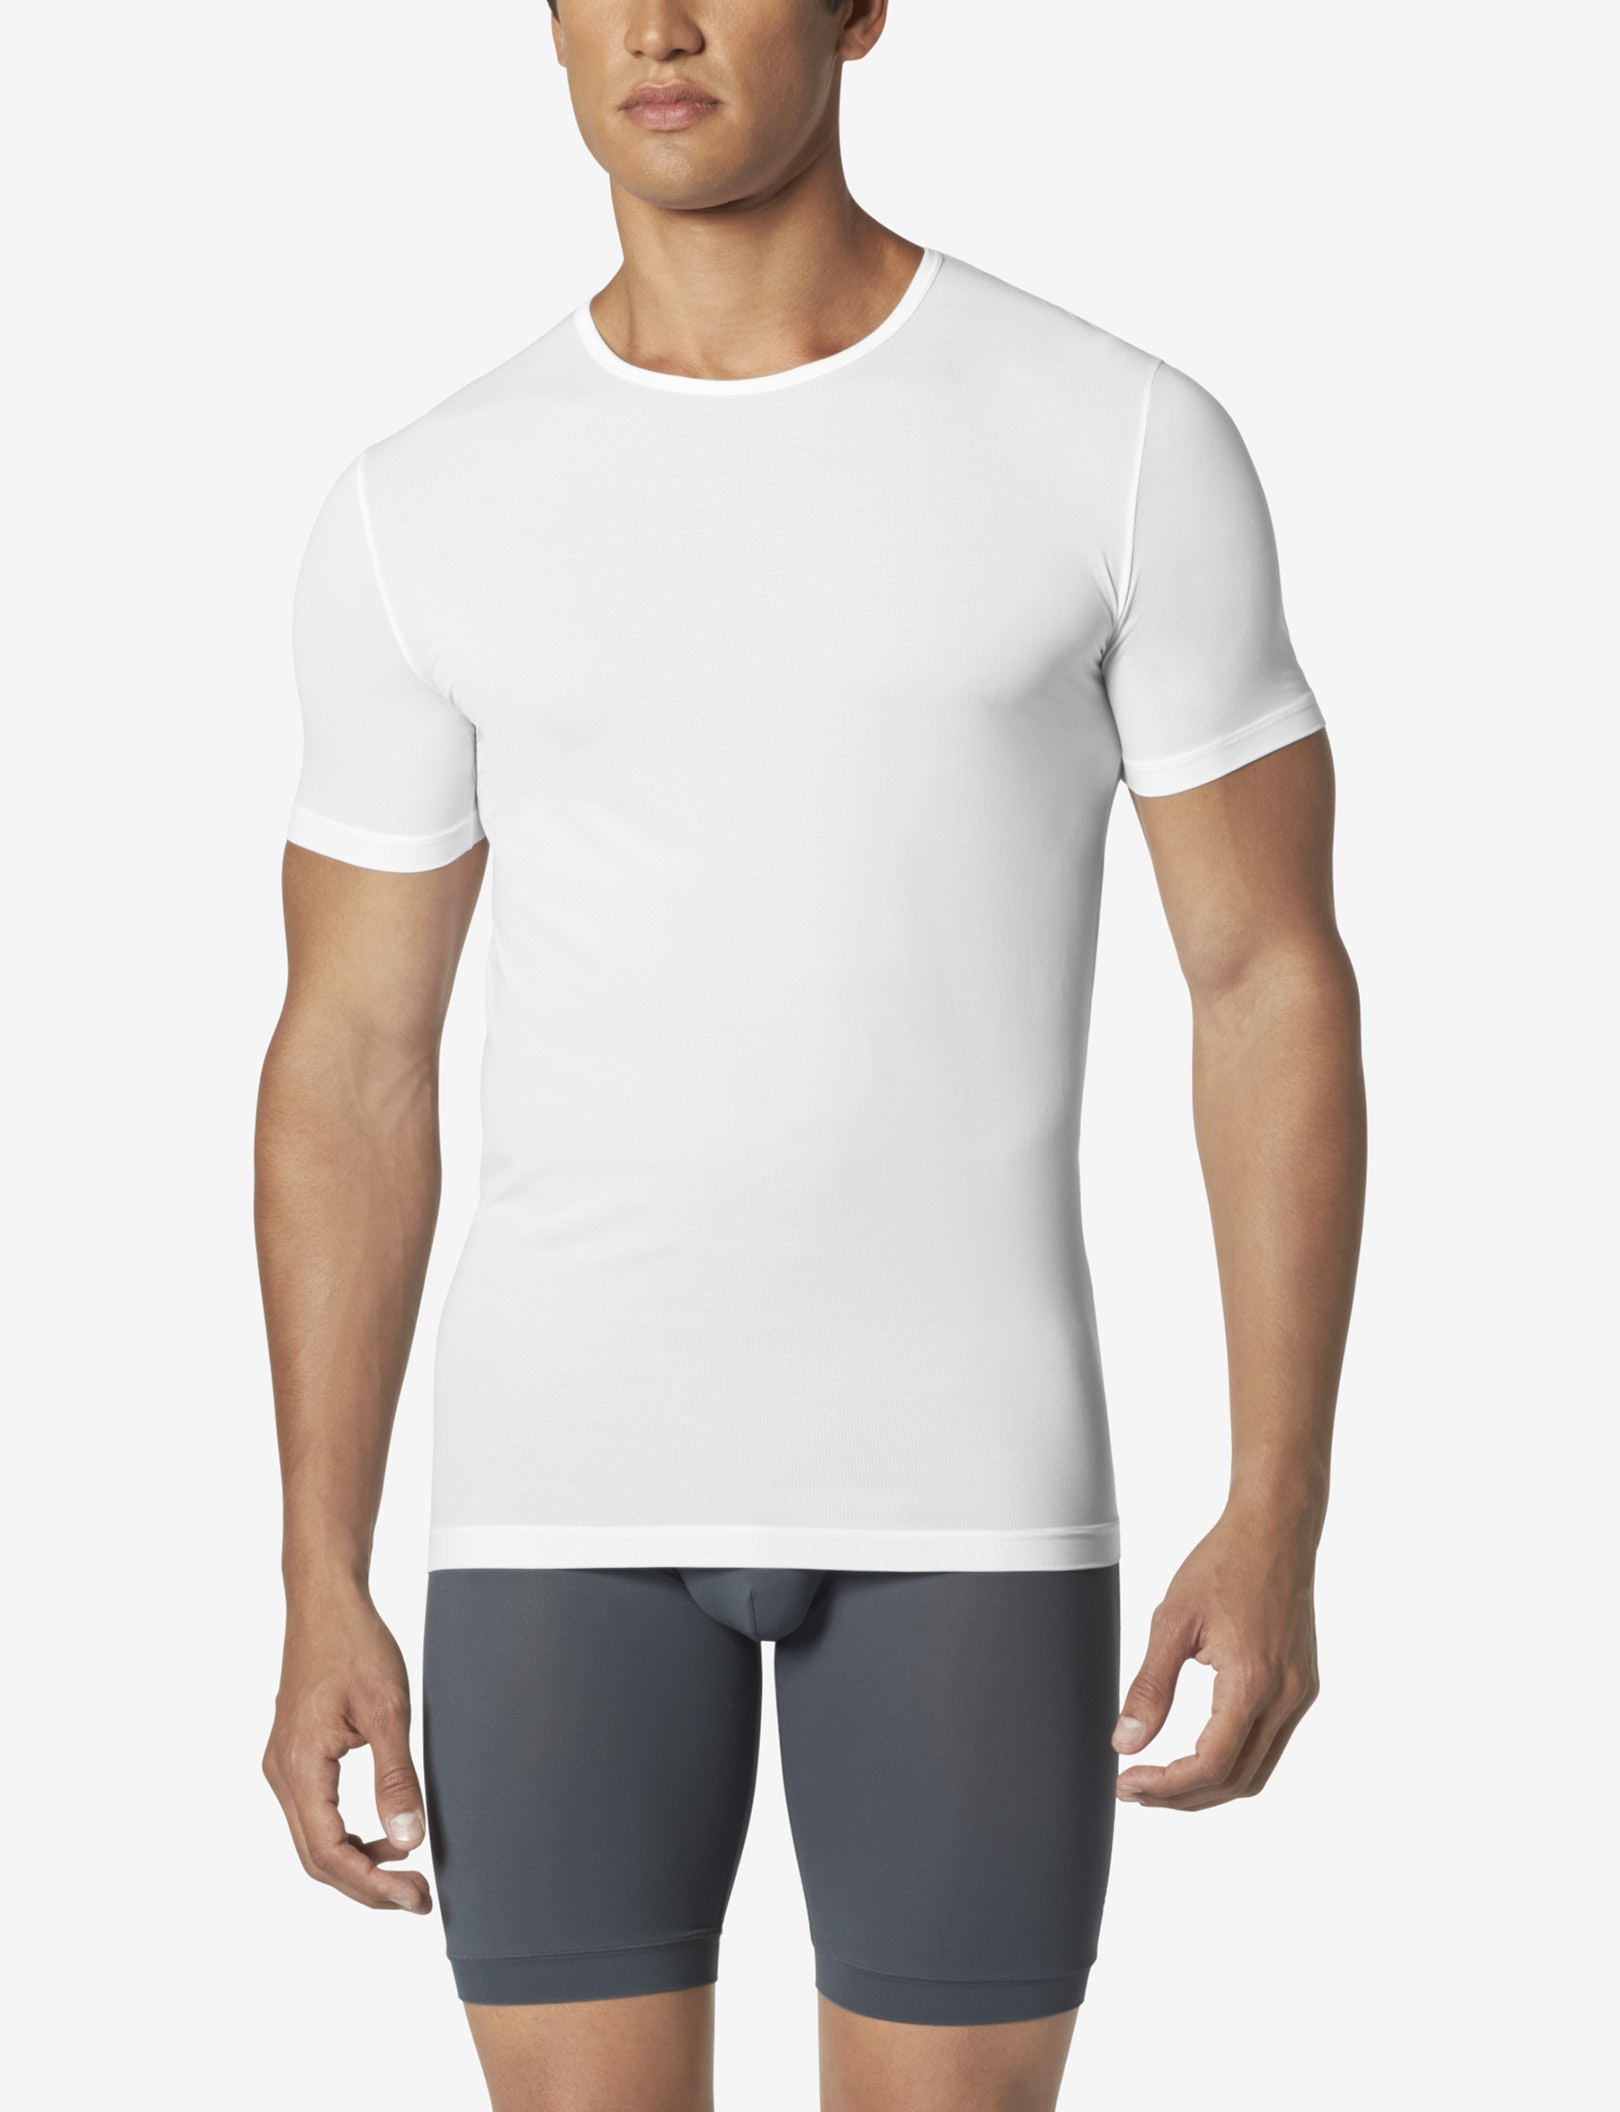 Air Crew Neck Undershirt